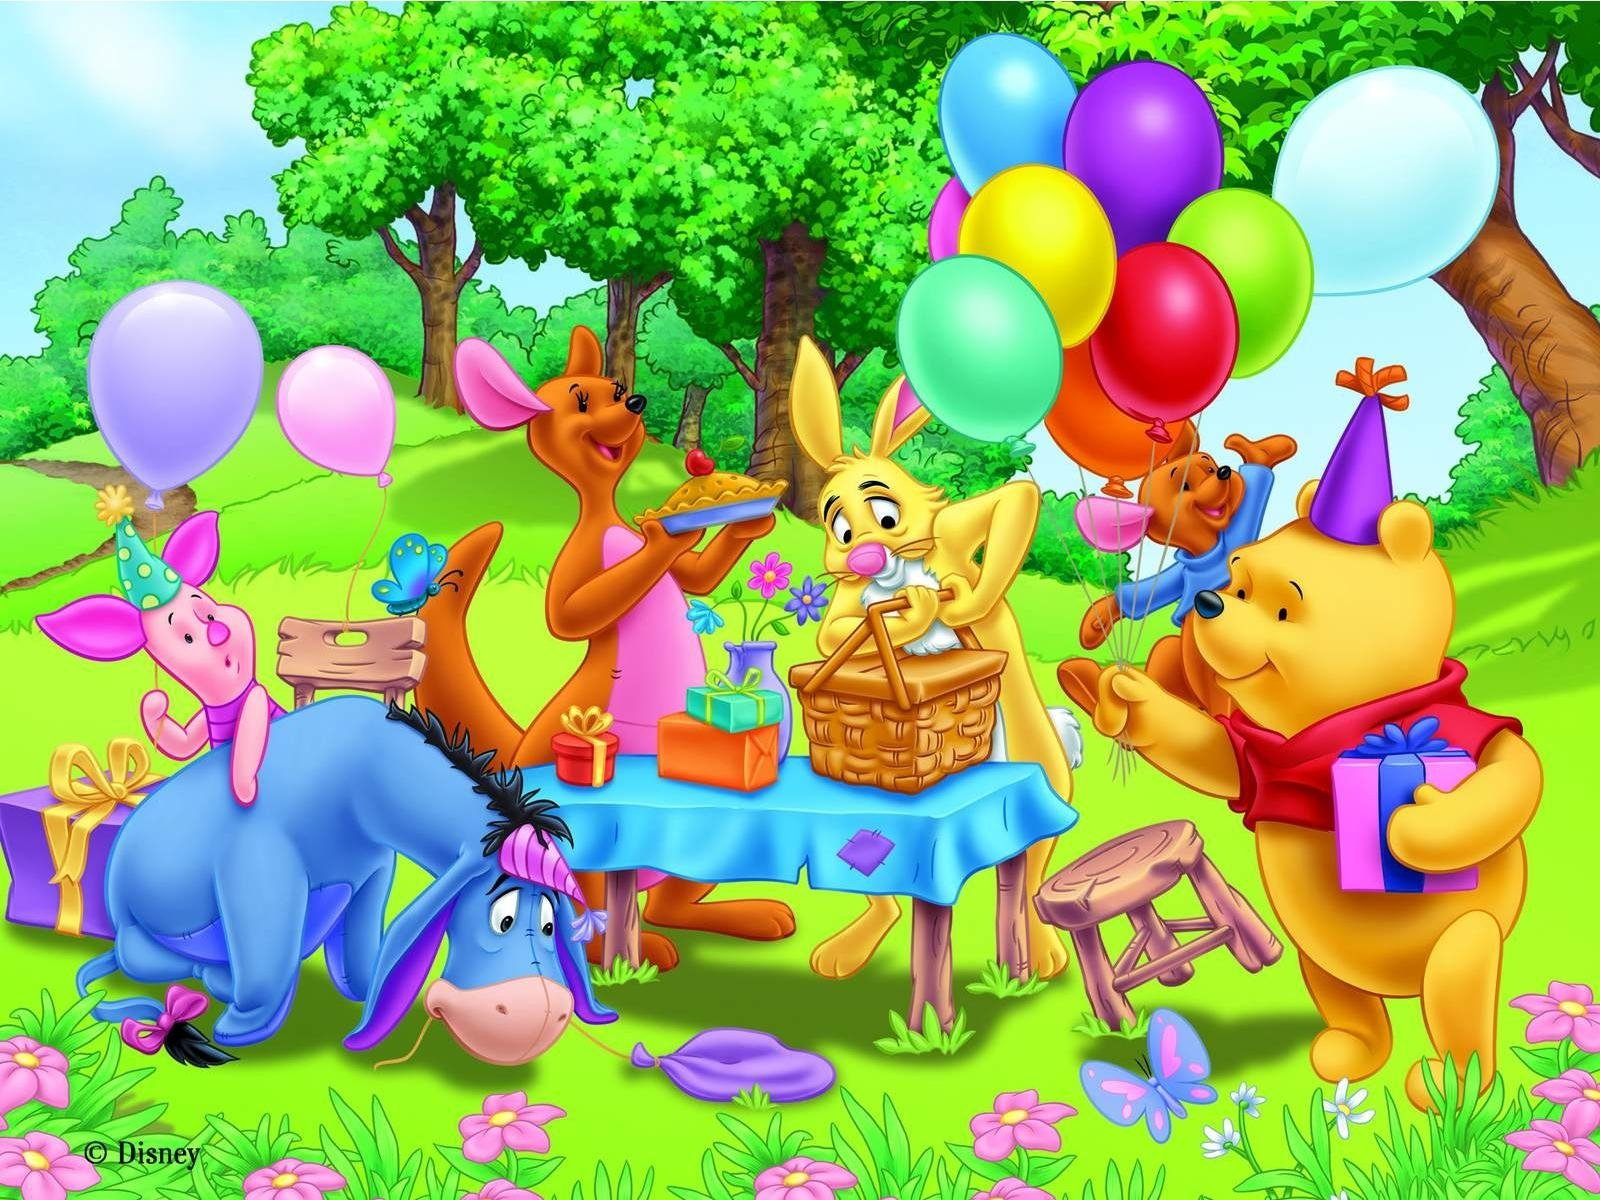 83 winnie the pooh hd wallpapers background images wallpaper abyss winnie the pooh hd wallpaper background image id453899 voltagebd